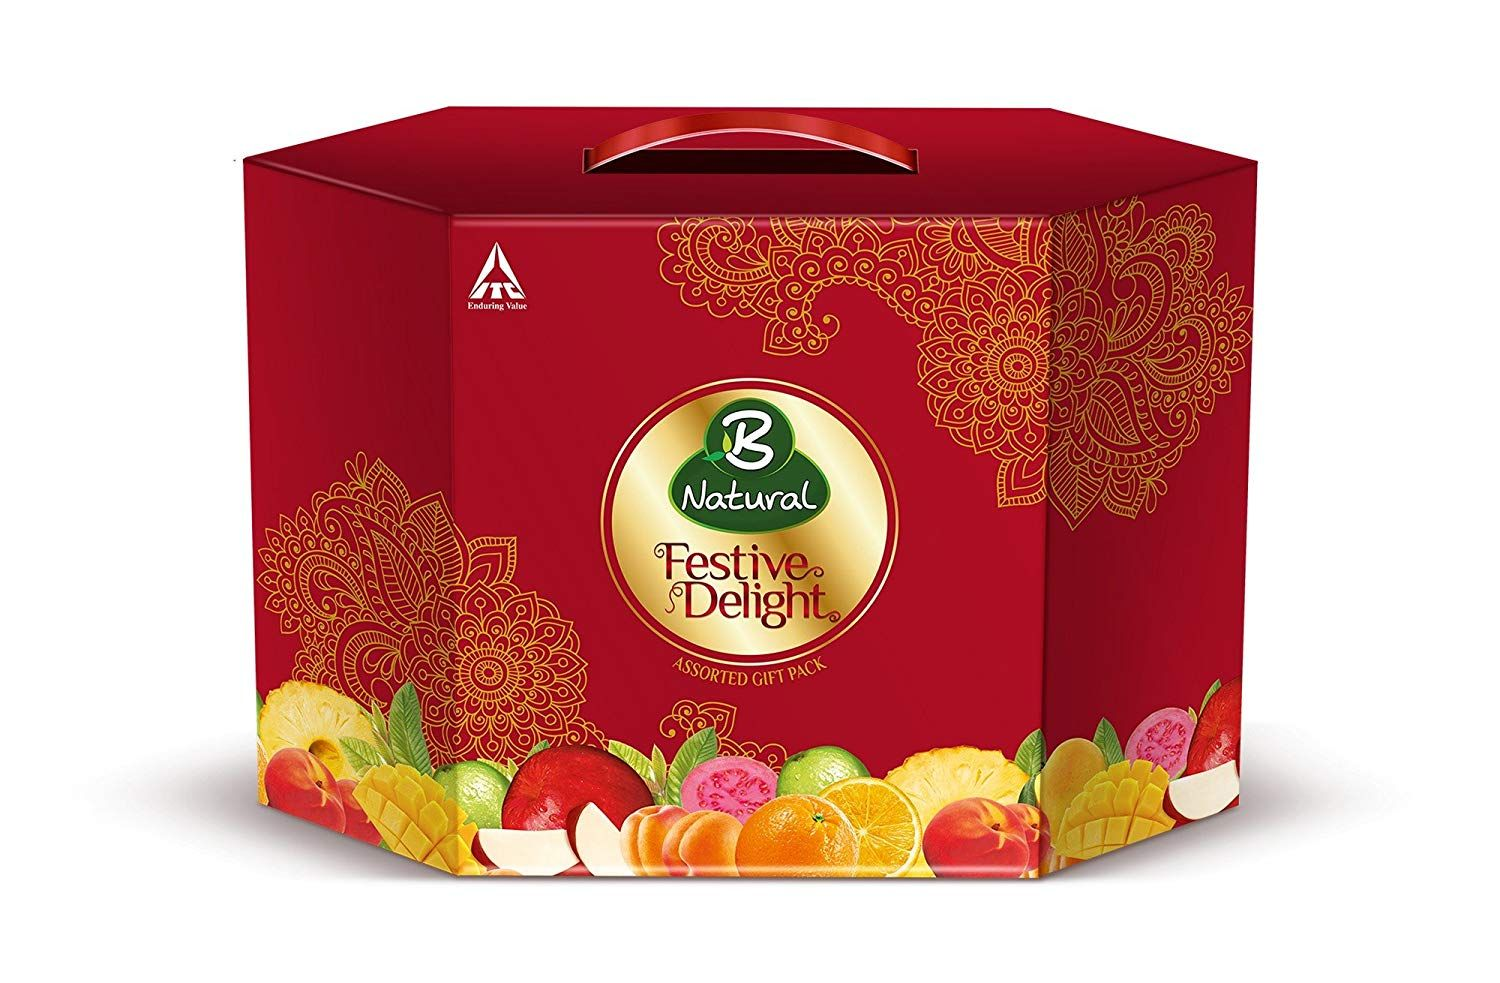 Flat 47% Off:- B Natural Festive Delight, 3L at Rs. 172